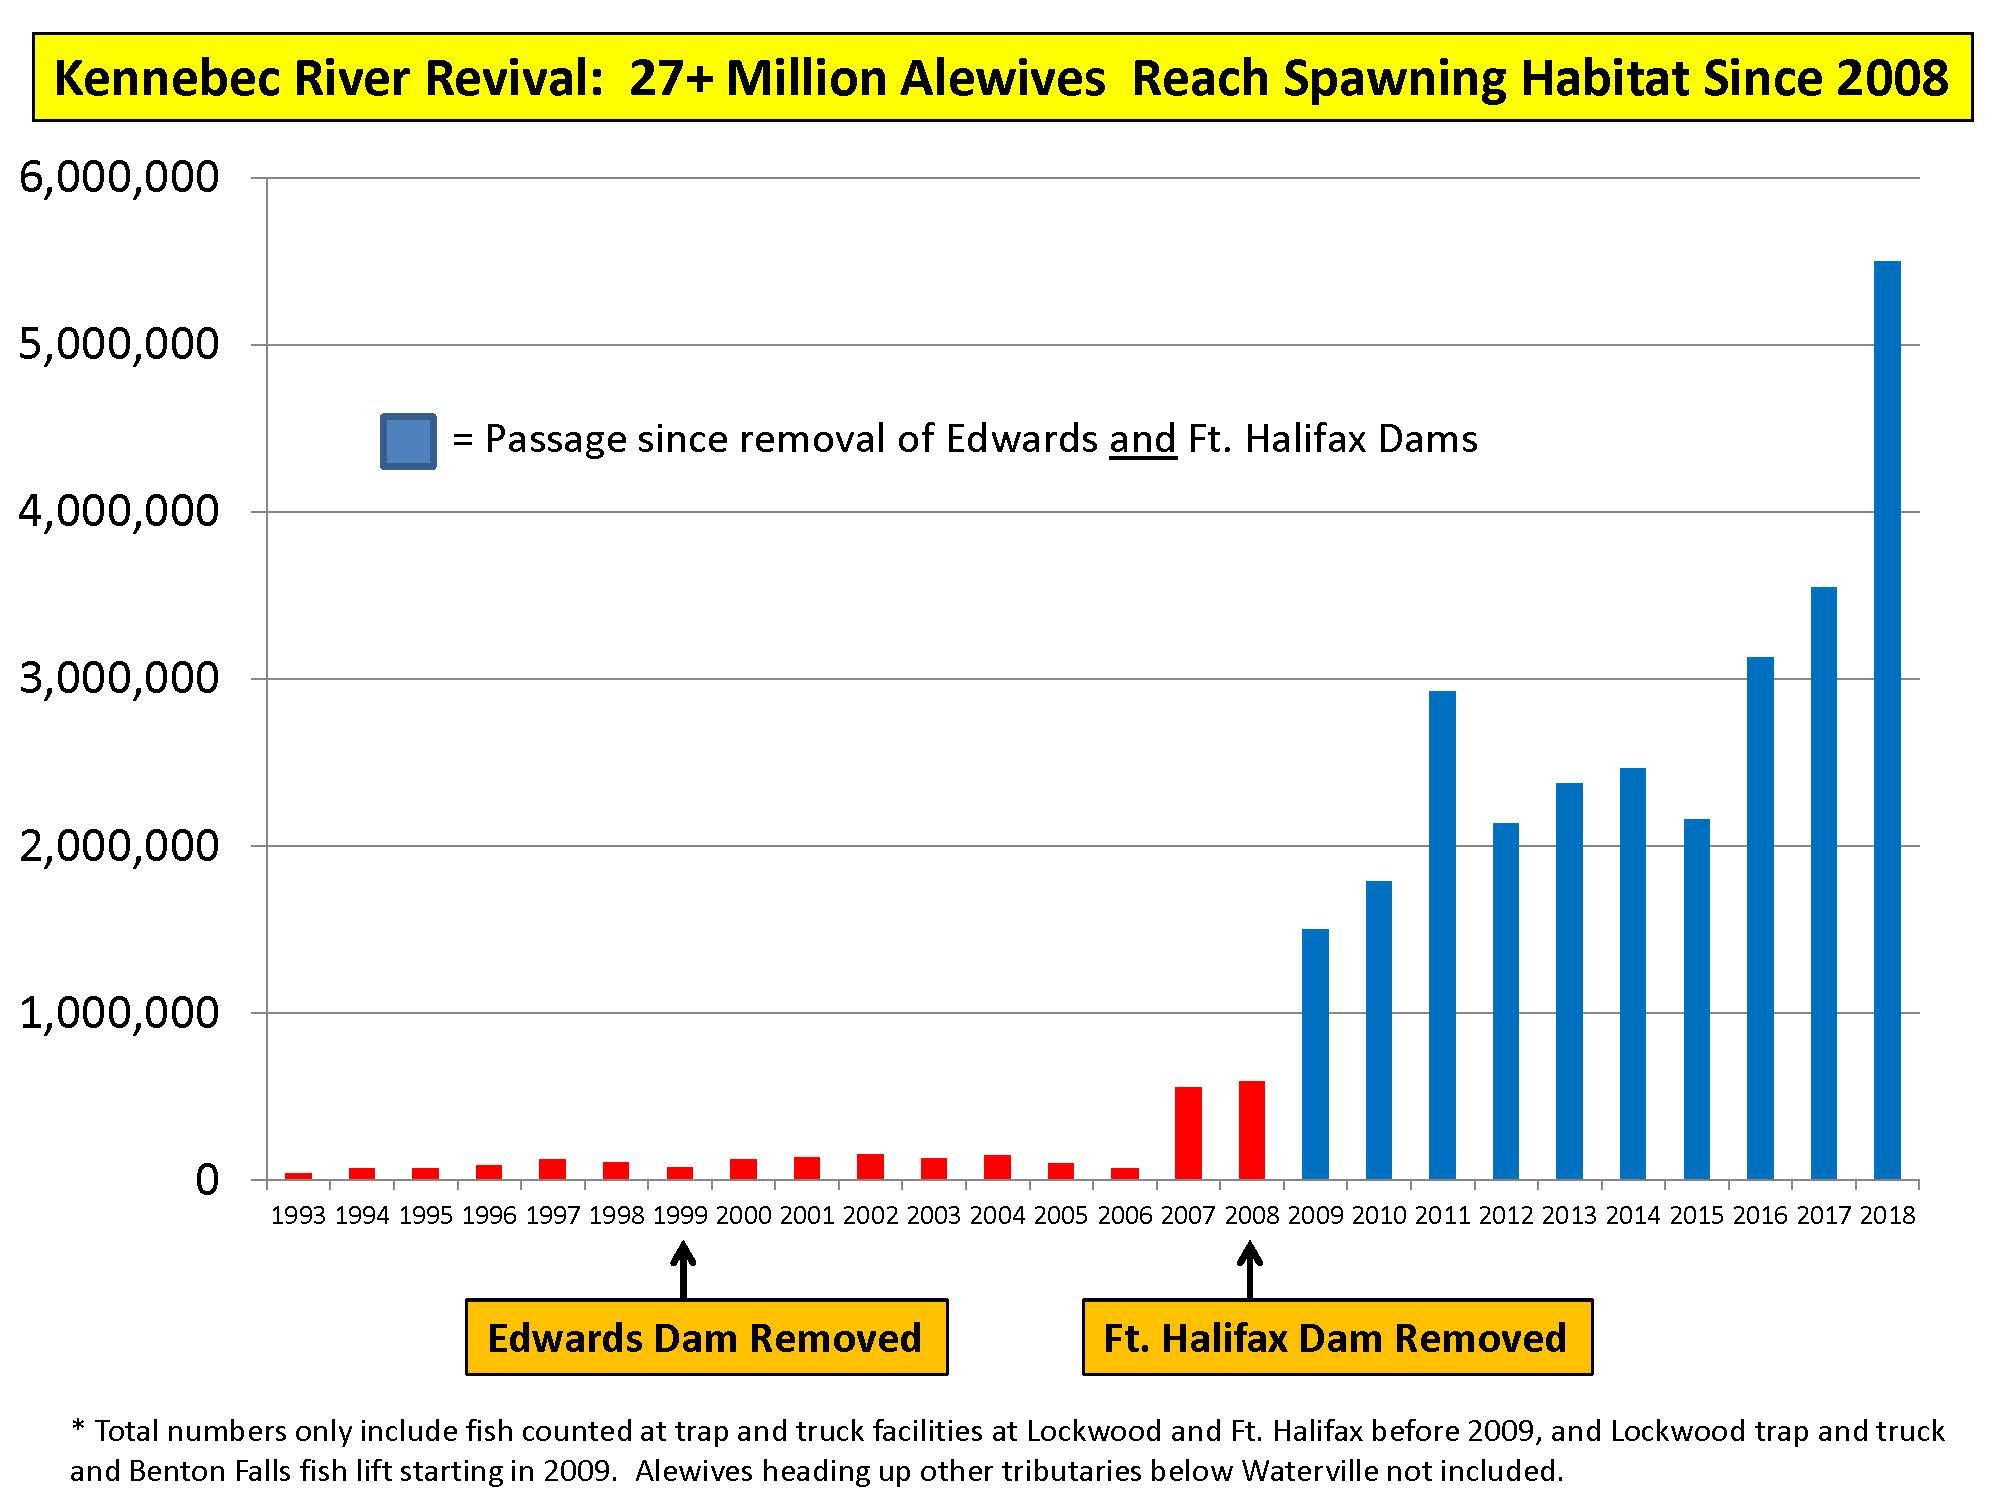 Alewife population in Kennebec River before and after removal of the Edwards Dam (1999) and the Fort Halifax Dam (2008)